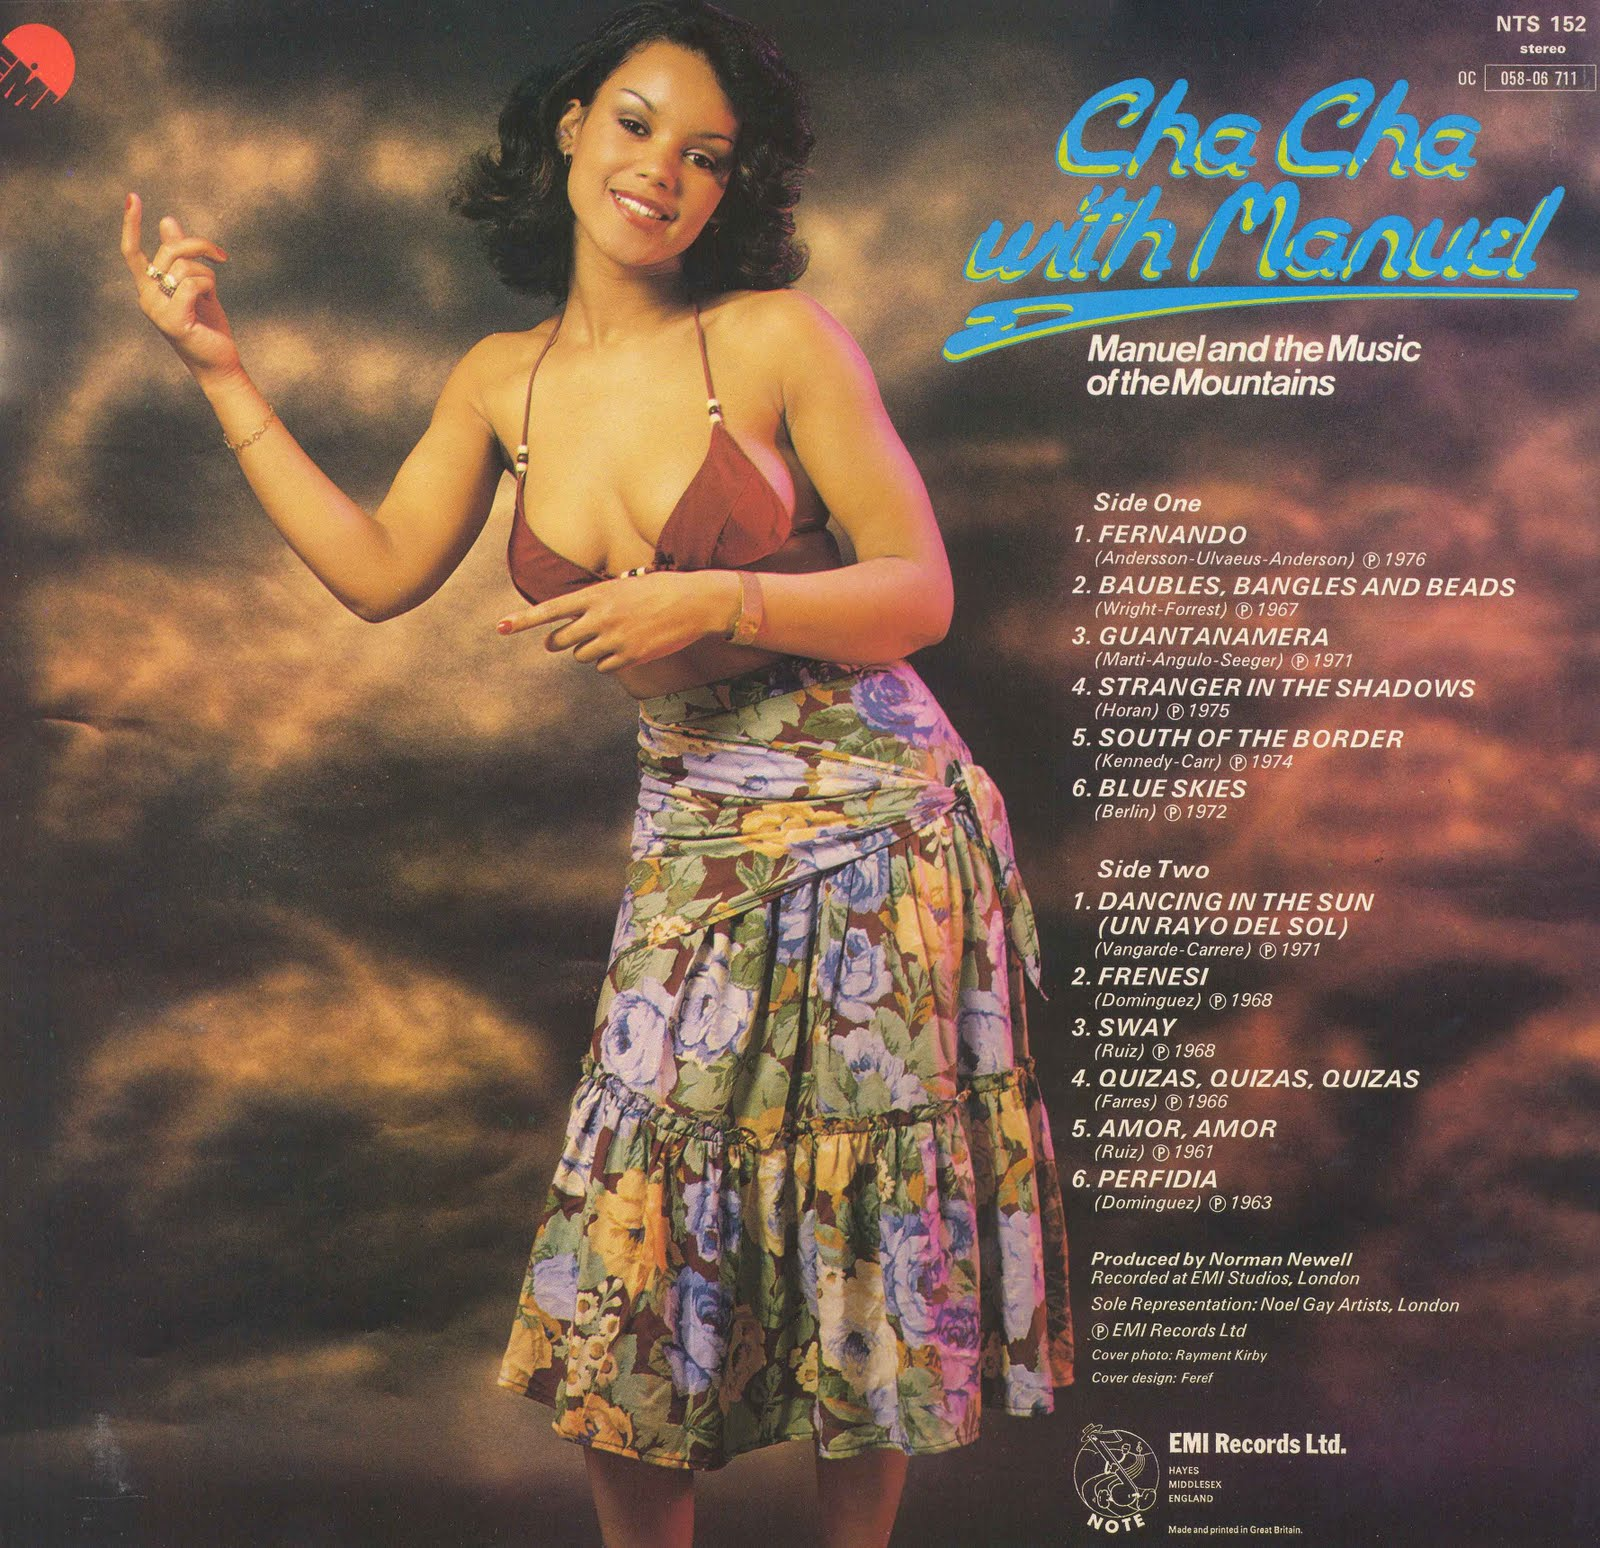 Manuel And His Music Of The Mountains - Cha Cha With Manuel (1976) .